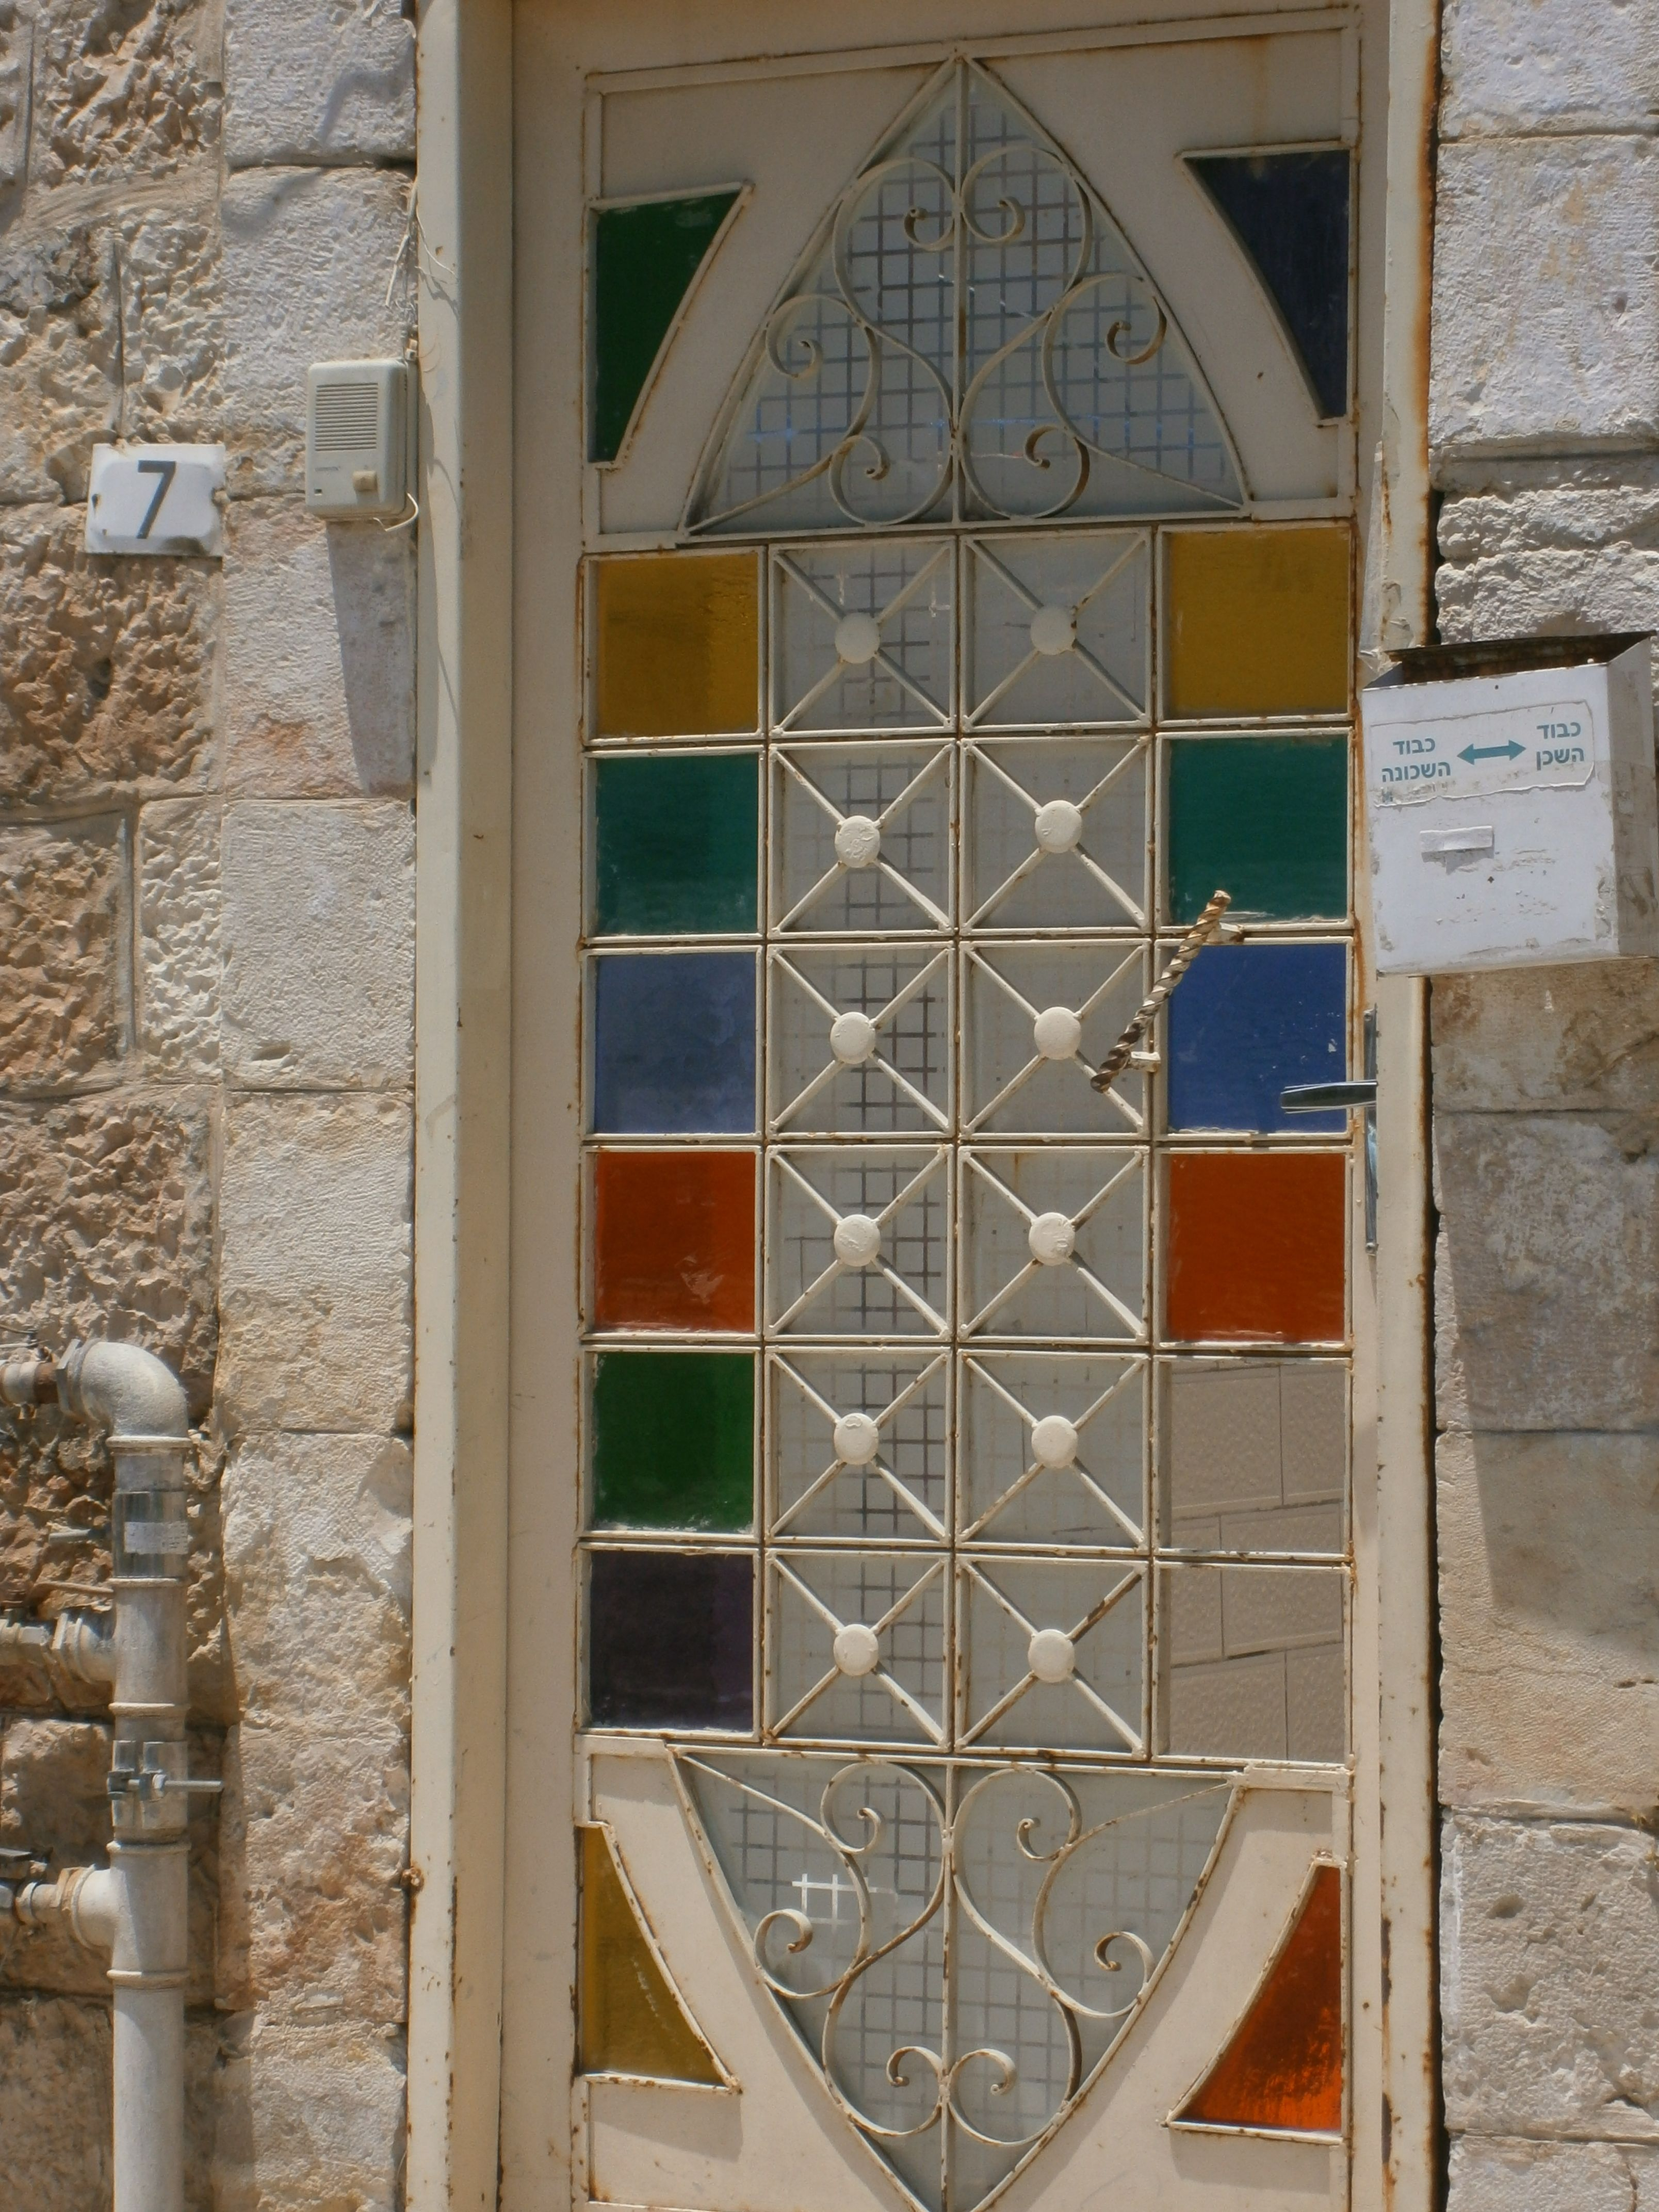 Antique stained glass doors - These Antique Stained Glass Doors Are In An Old Courtyard In The Shteibelach Just North Of